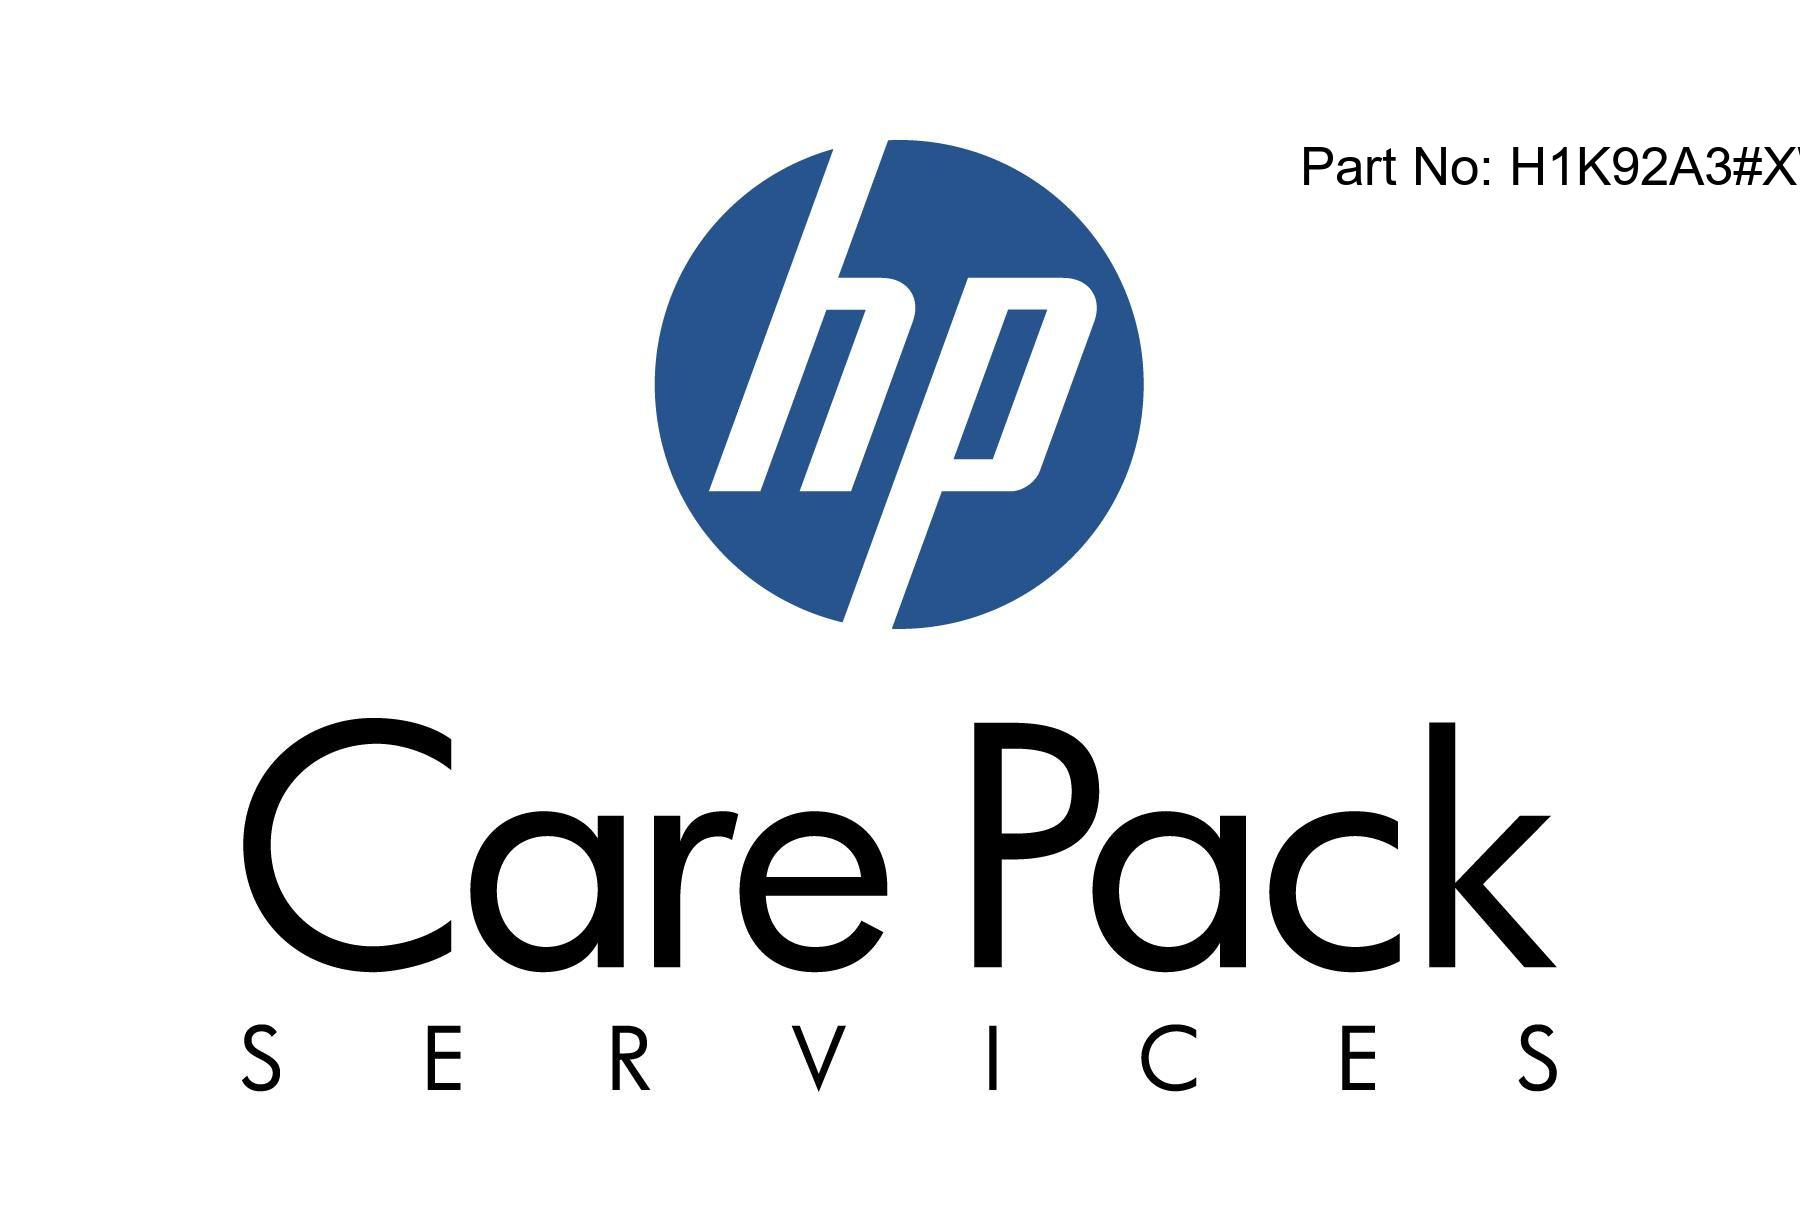 Proactive Care 24x7 Service - Extended service agreement - parts and labor - 3 years - on-site - 24x7 - response time: 4 h - for P/N: 846041-B21